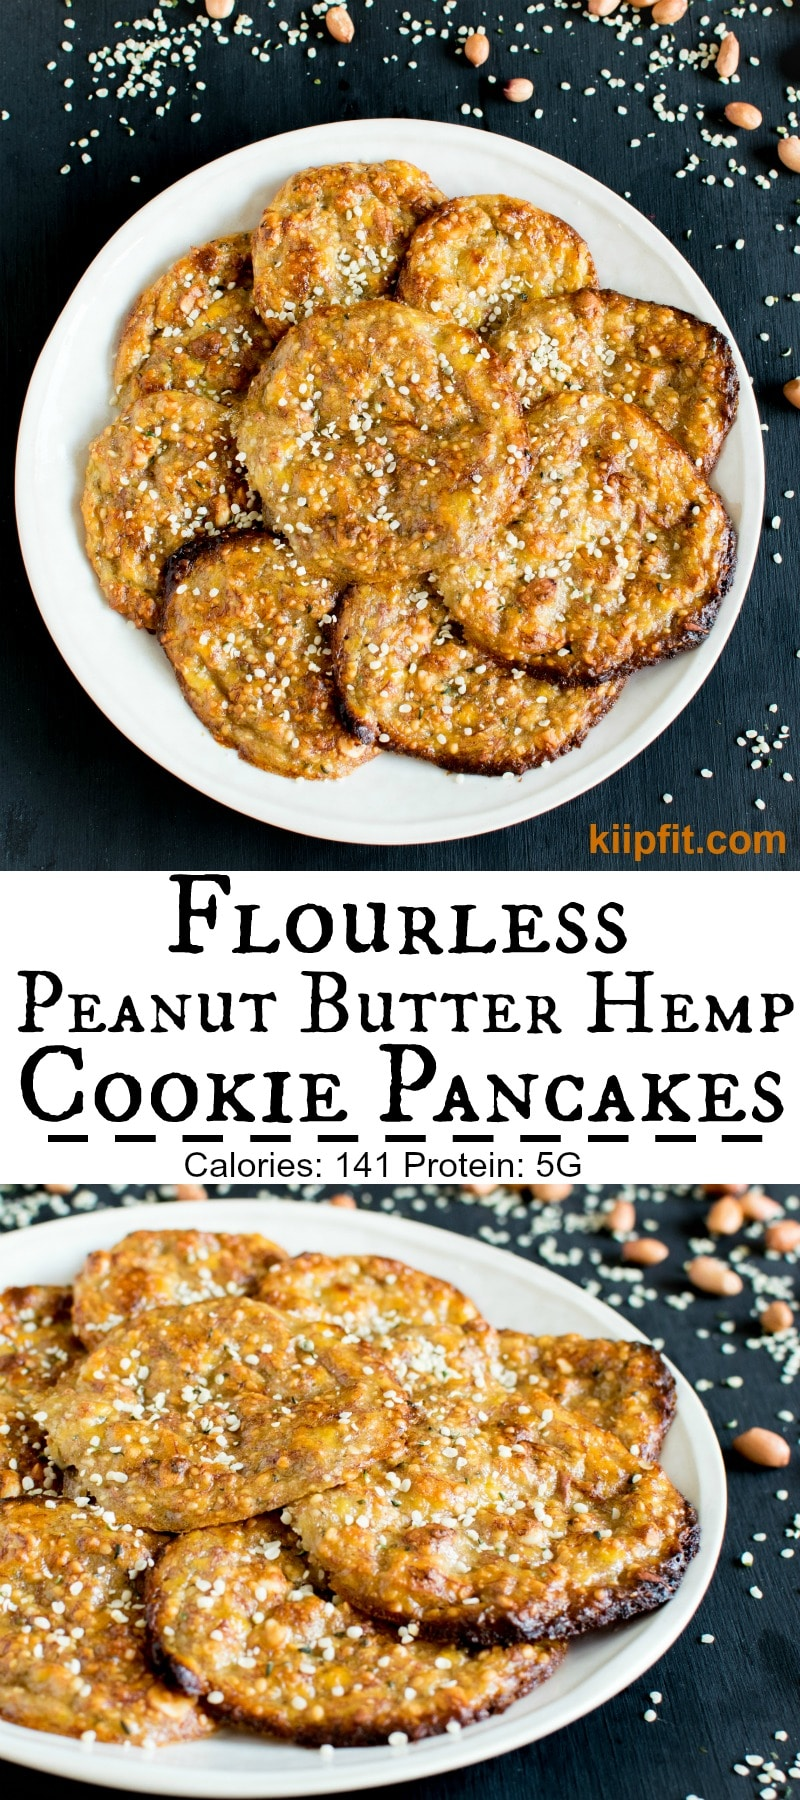 Flourless Peanut Butter Hemp Cookie Pancakes are moist, soft and chewy with mind blowing flavors. These cookies are absolutely out of this world. I would say it's a hybrid between a cookie and a pancake. The ingredients and taste of this dessert is similar to cookies. However, the texture and the outcome is similar to pancakes. It's perfect to satisfy the desire of cookies and pancakes in just one plate [ vegan + GF ] kiipfit.com